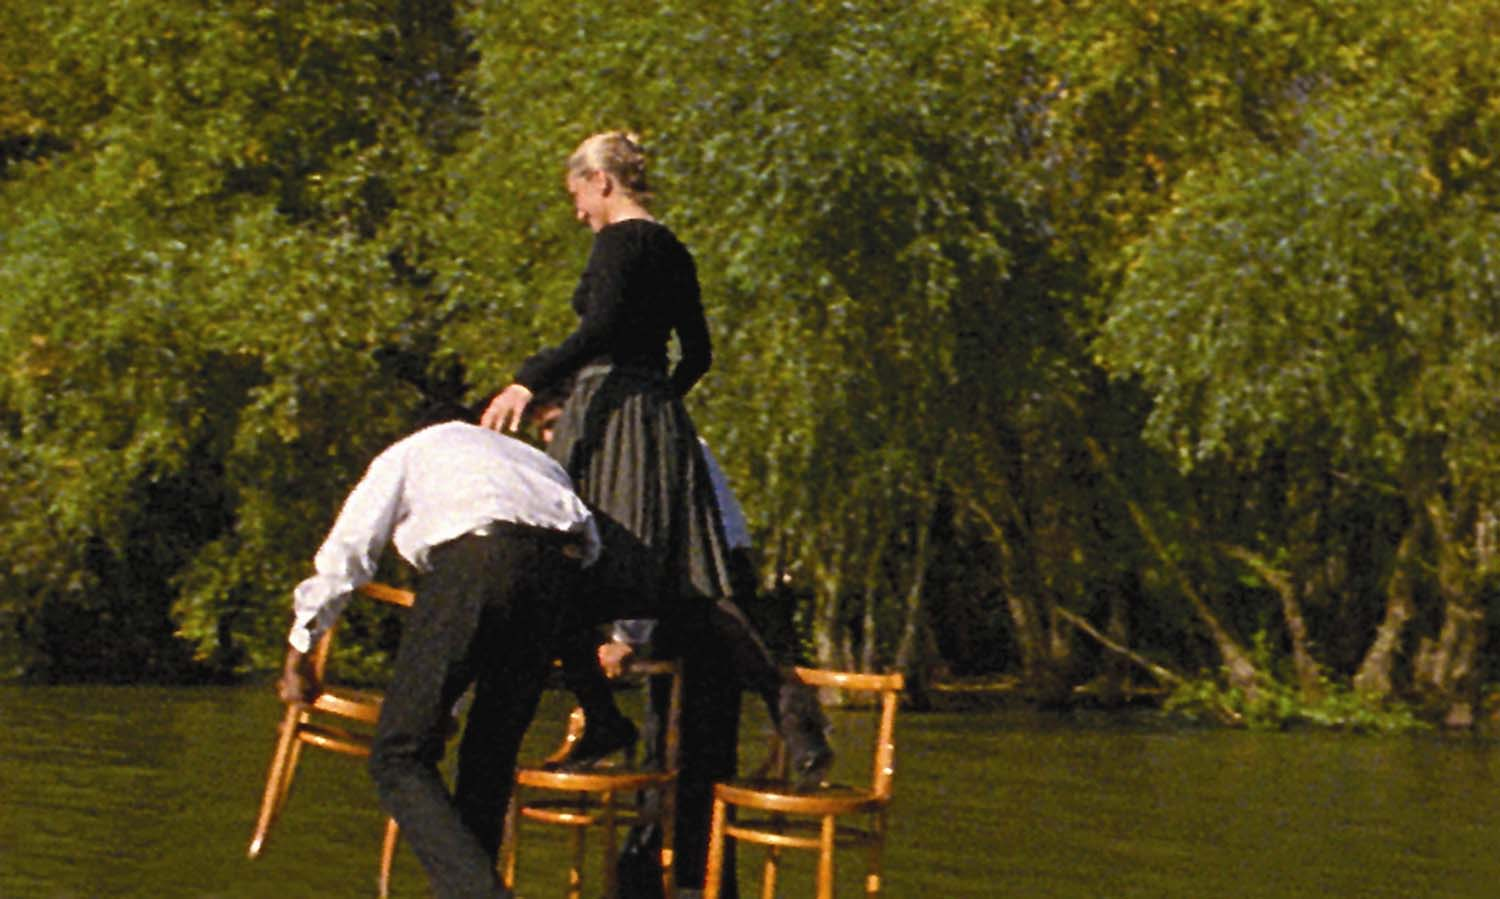 Breda Beban, Walk of the Three Chairs, 2003. Commissioned by Film and Video Umbrella / John Hansard Gallery. Supported by the National Touring Programme of Arts Council England.